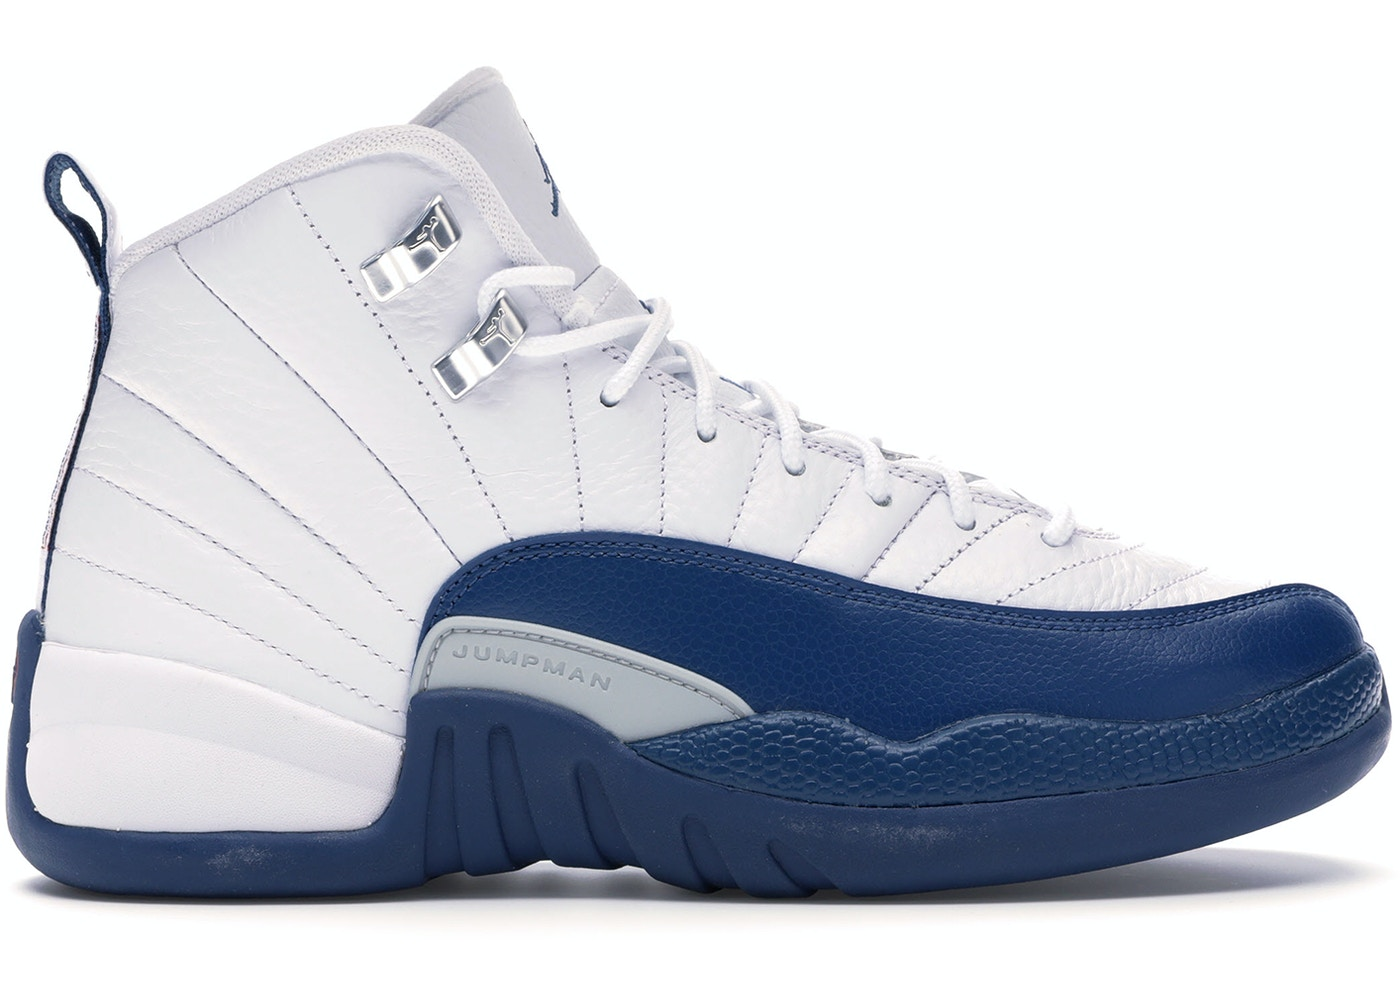 size 40 7cdd0 43139 Jordan 12 Retro French Blue 2016 (GS)